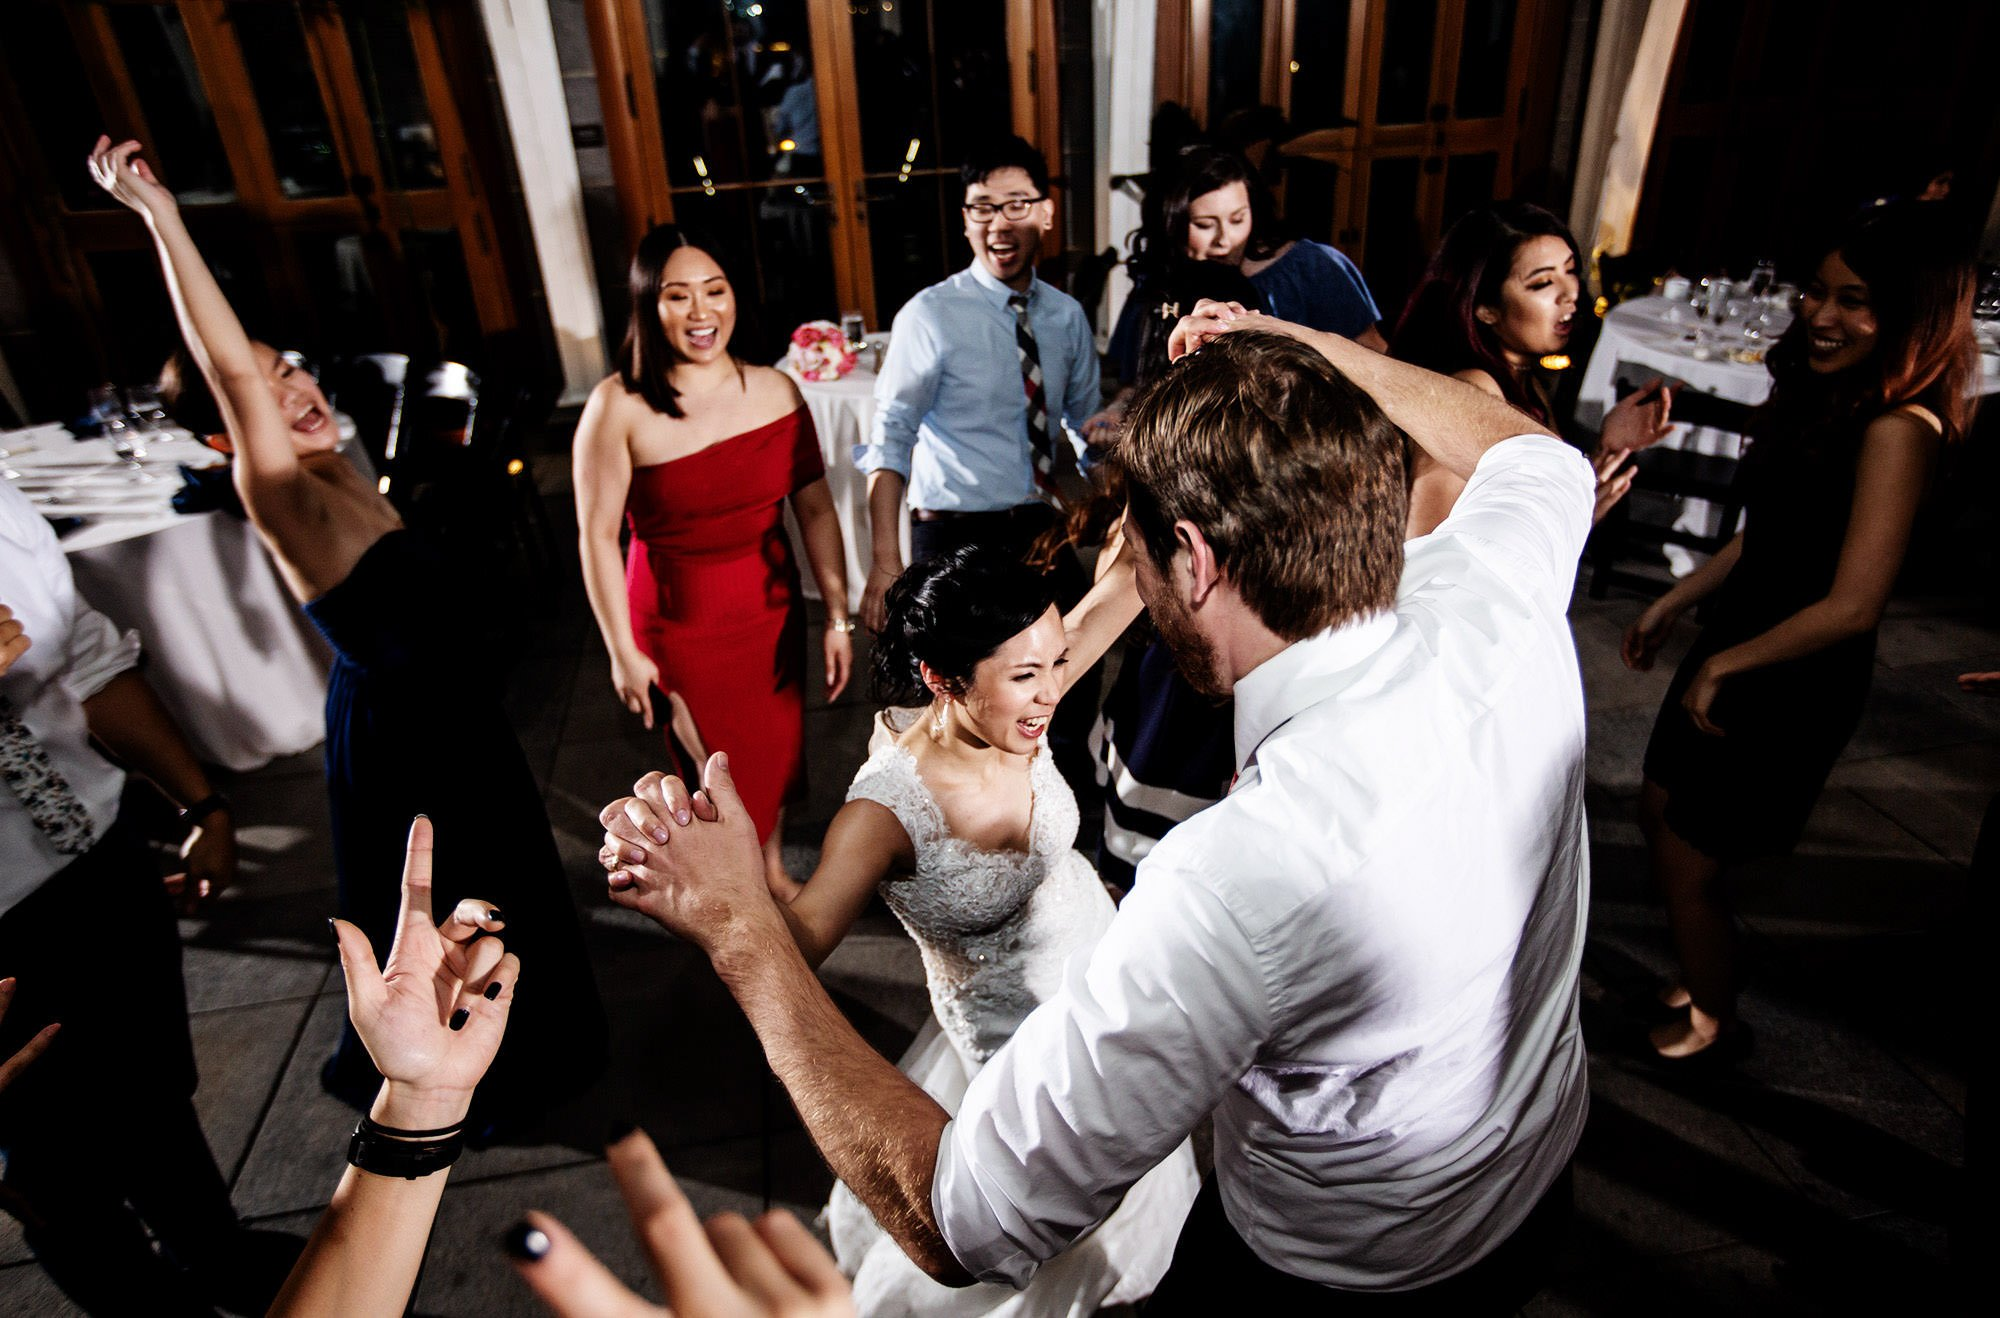 The bride dances with her guests during the Tower Hill Botanic Garden Wedding reception.